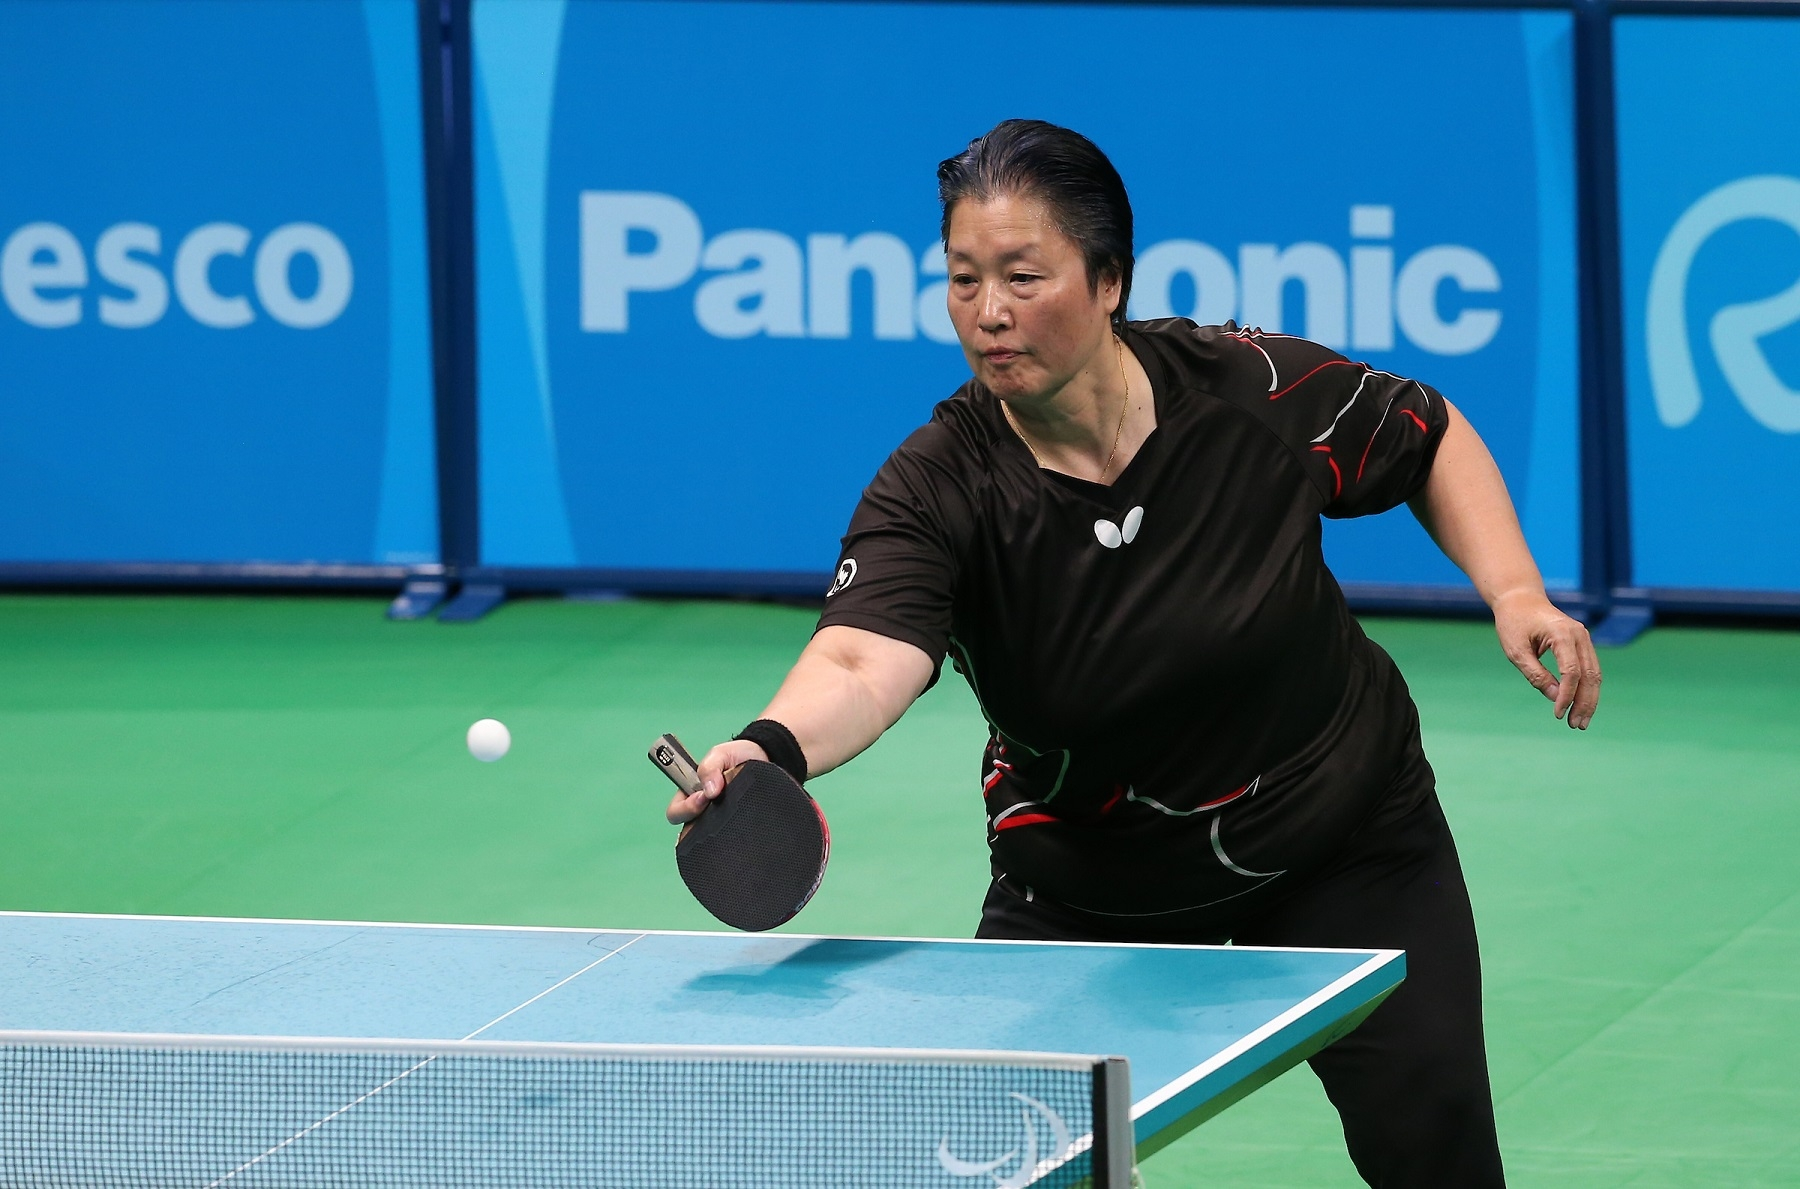 Stephanie Chan competes in Para table tennis at Rio 2016.